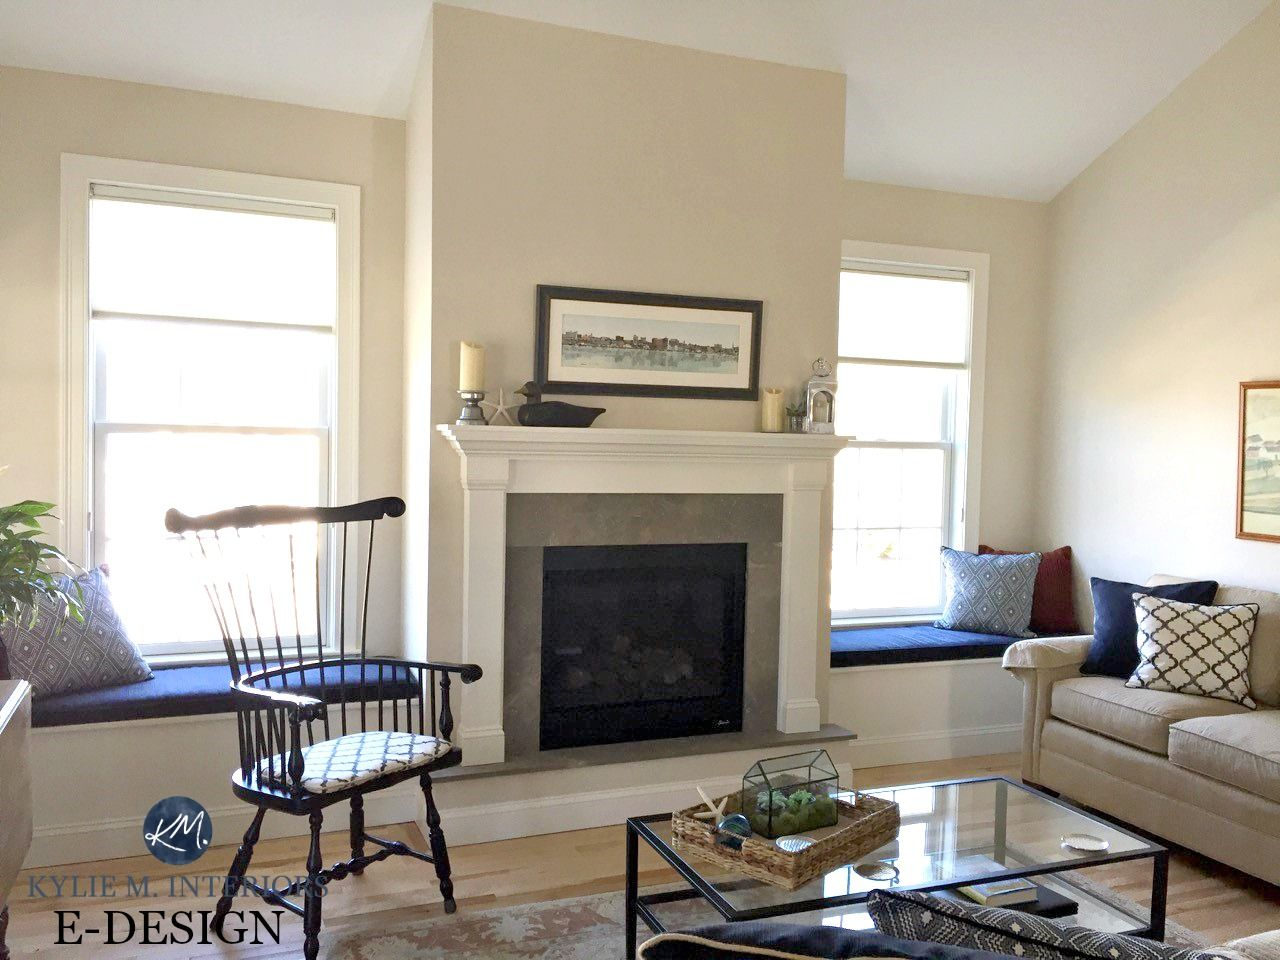 Sherwin Williams : 5 of the Best Neutral / Beige Paint Colours ...